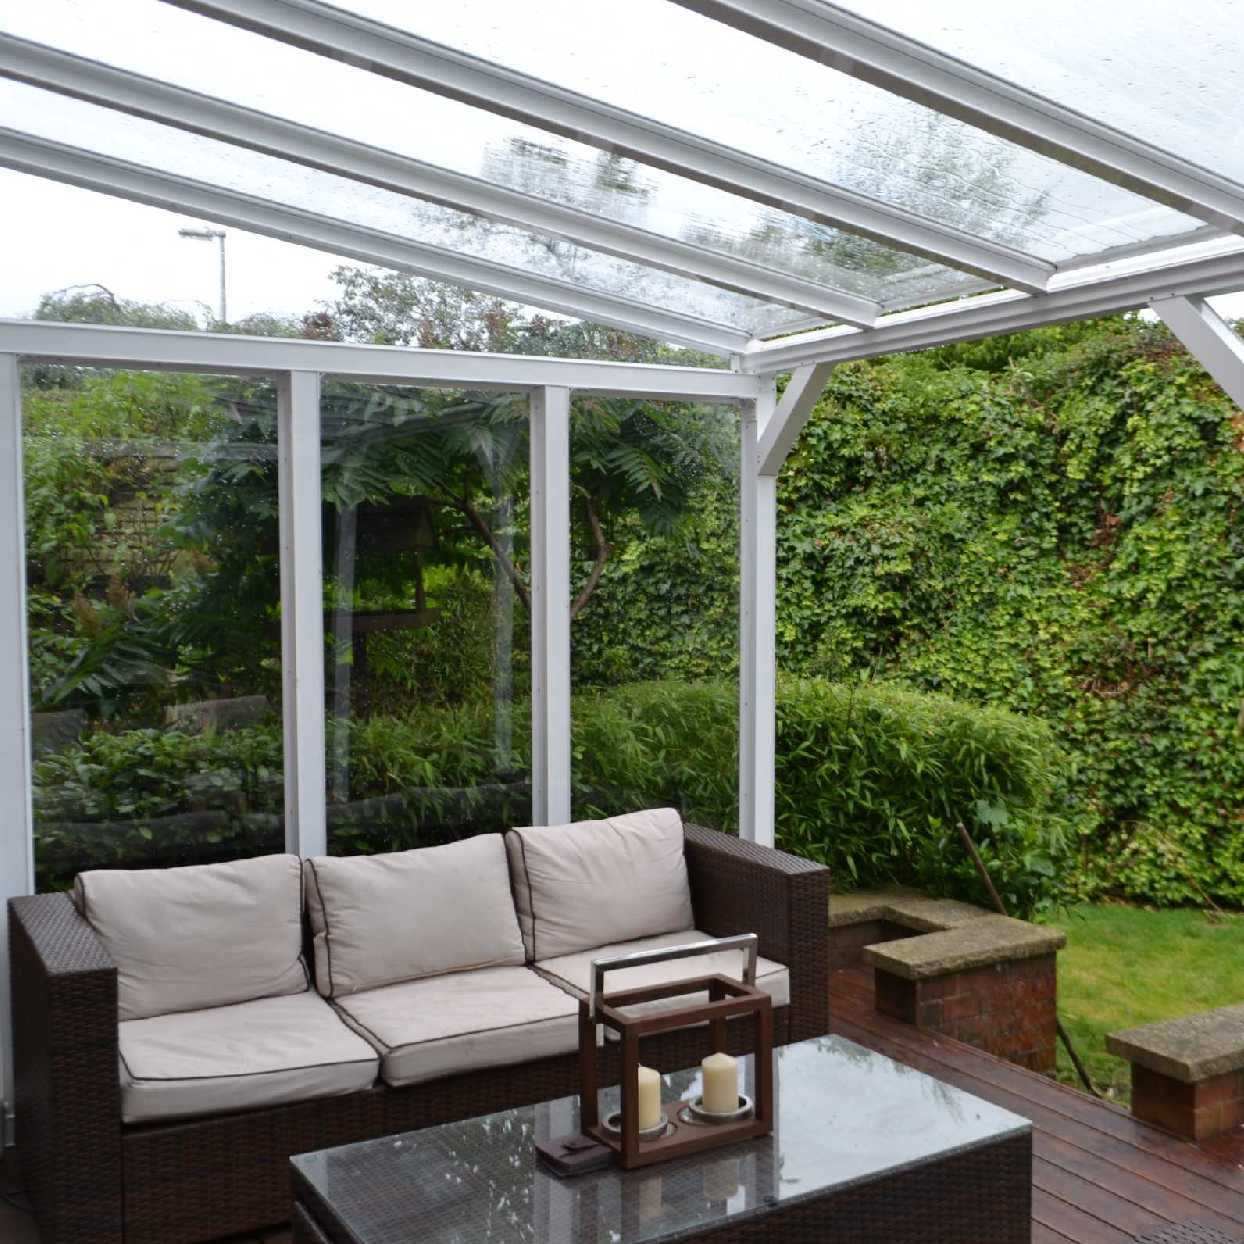 Omega Smart White Lean-To Canopy with 6mm Glass Clear Plate Polycarbonate Glazing - 5.6m (W) x 3.0m (P), (3) Supporting Posts